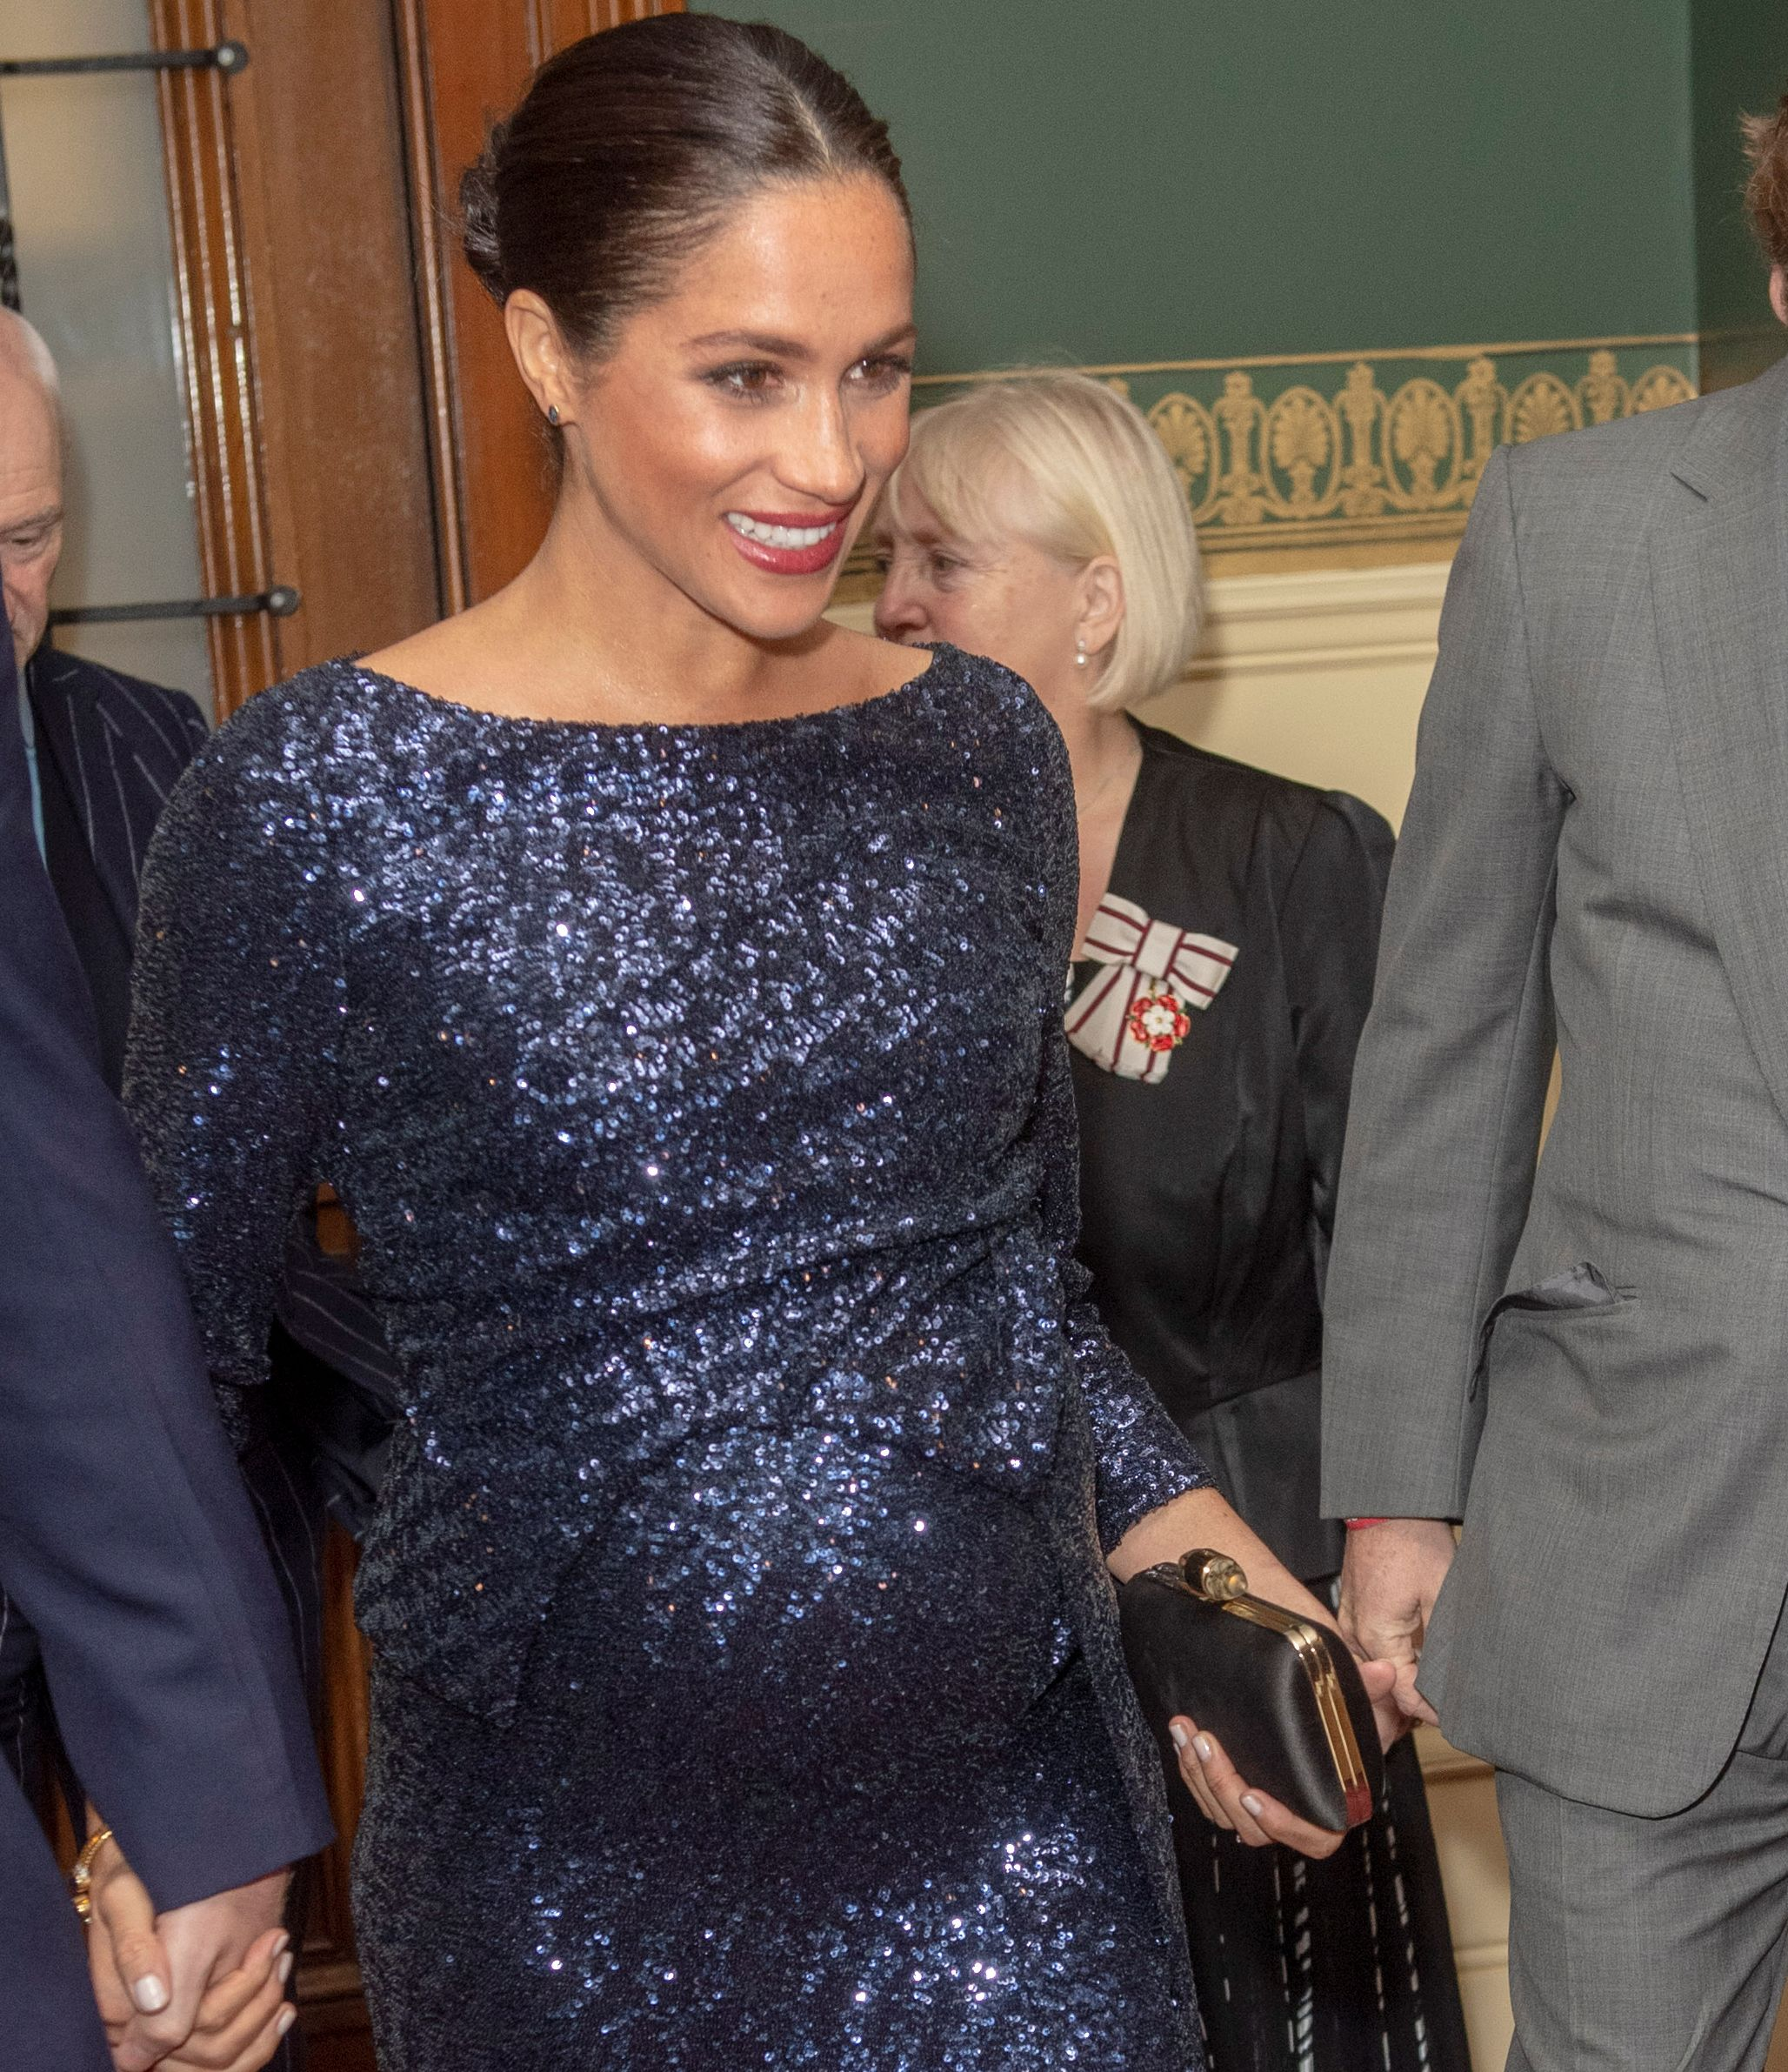 Meghan, Duchess of Sussex attends the premiere of Cirque du Soleil's 'Totem' at the Royal Albert Hall in London